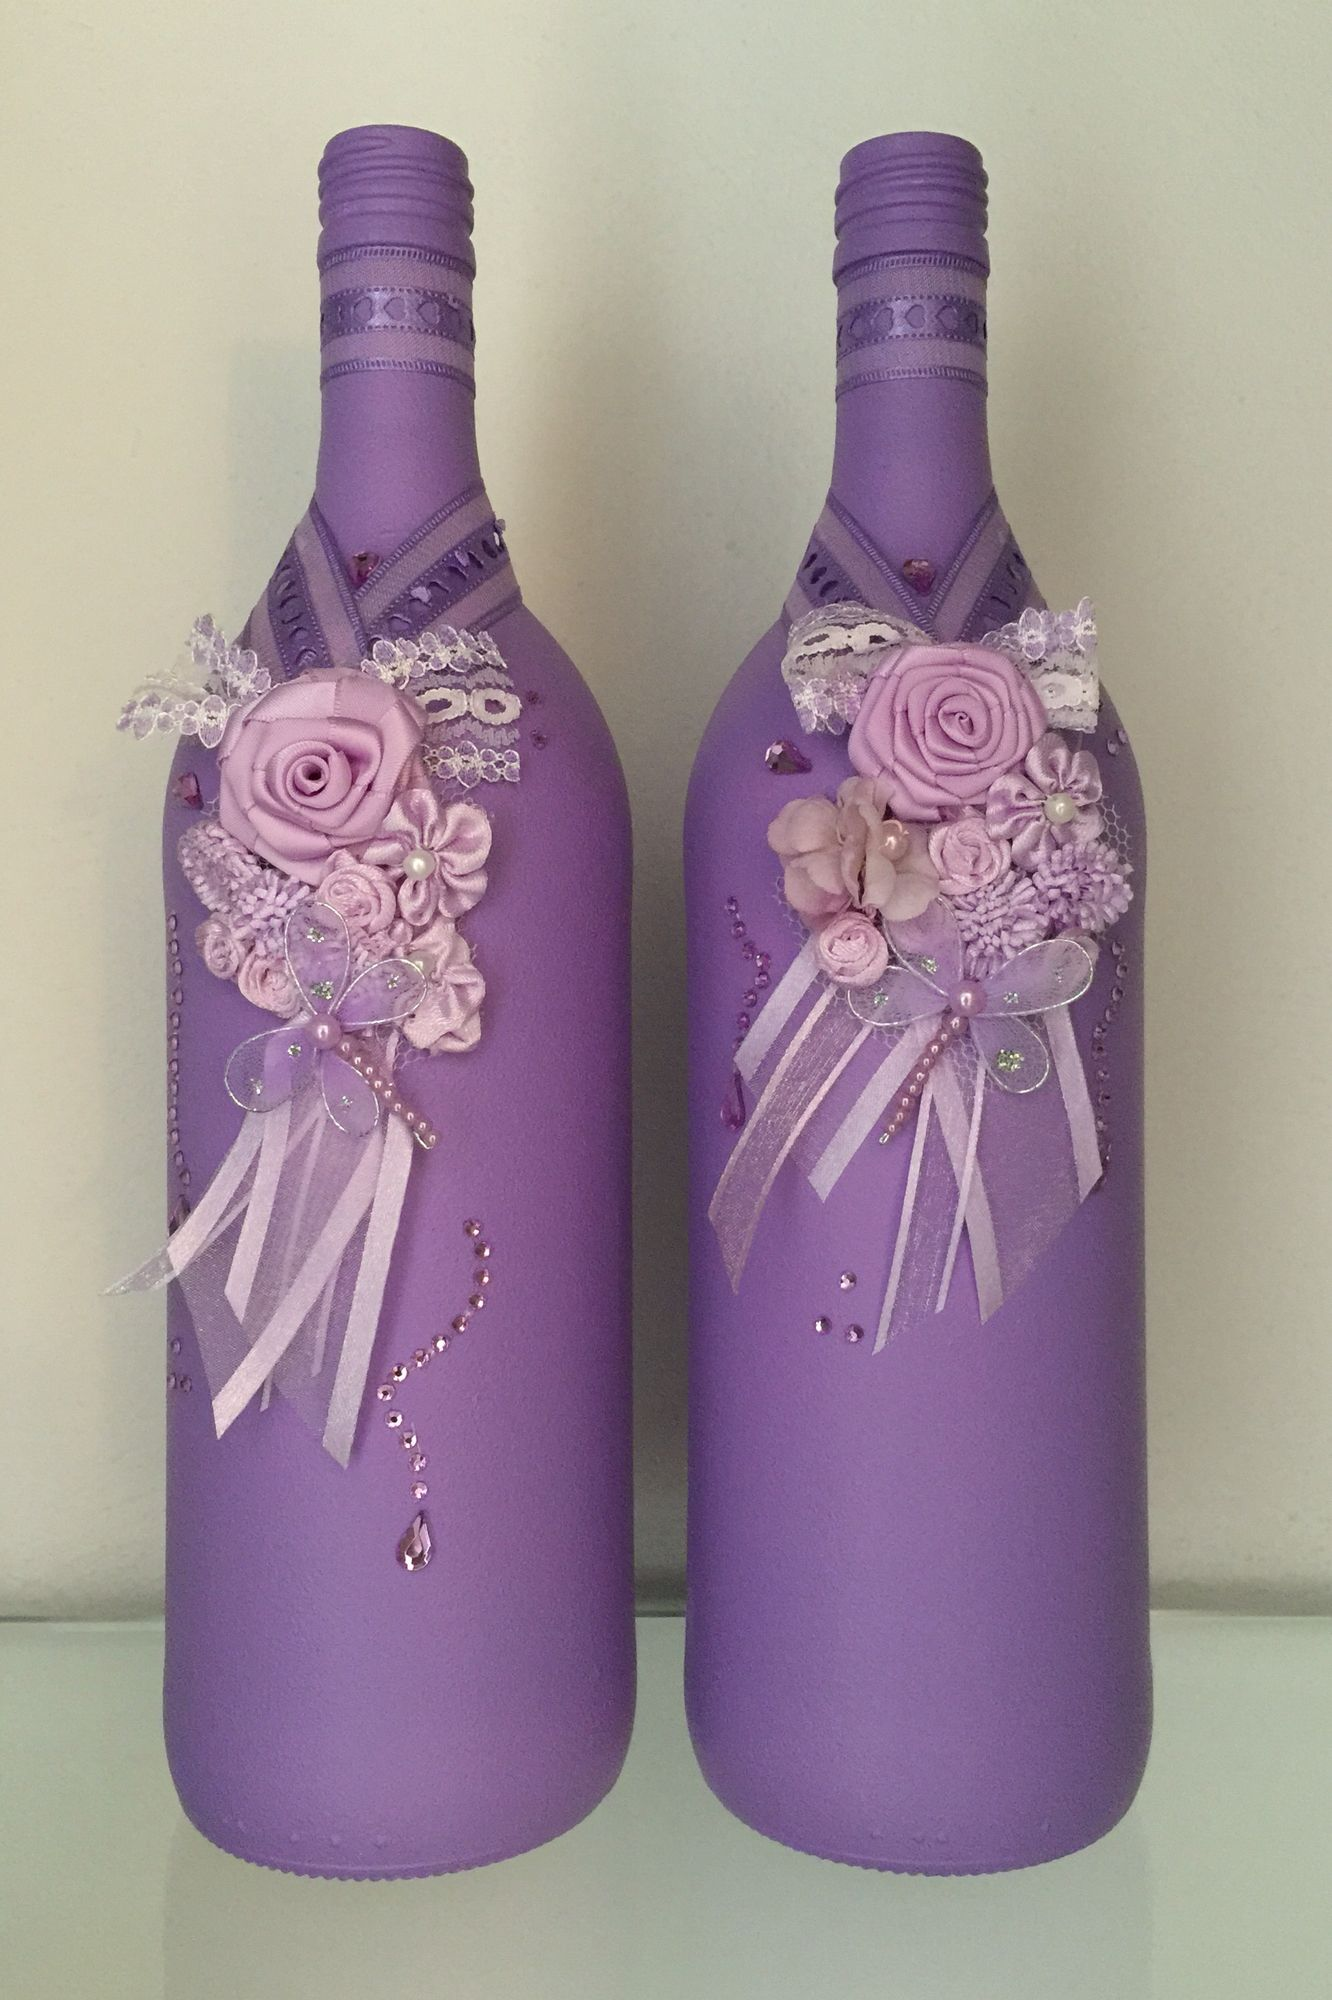 Botellas Decoradas Navideñas Botellas Decoradas Decorar Botellas Pinterest